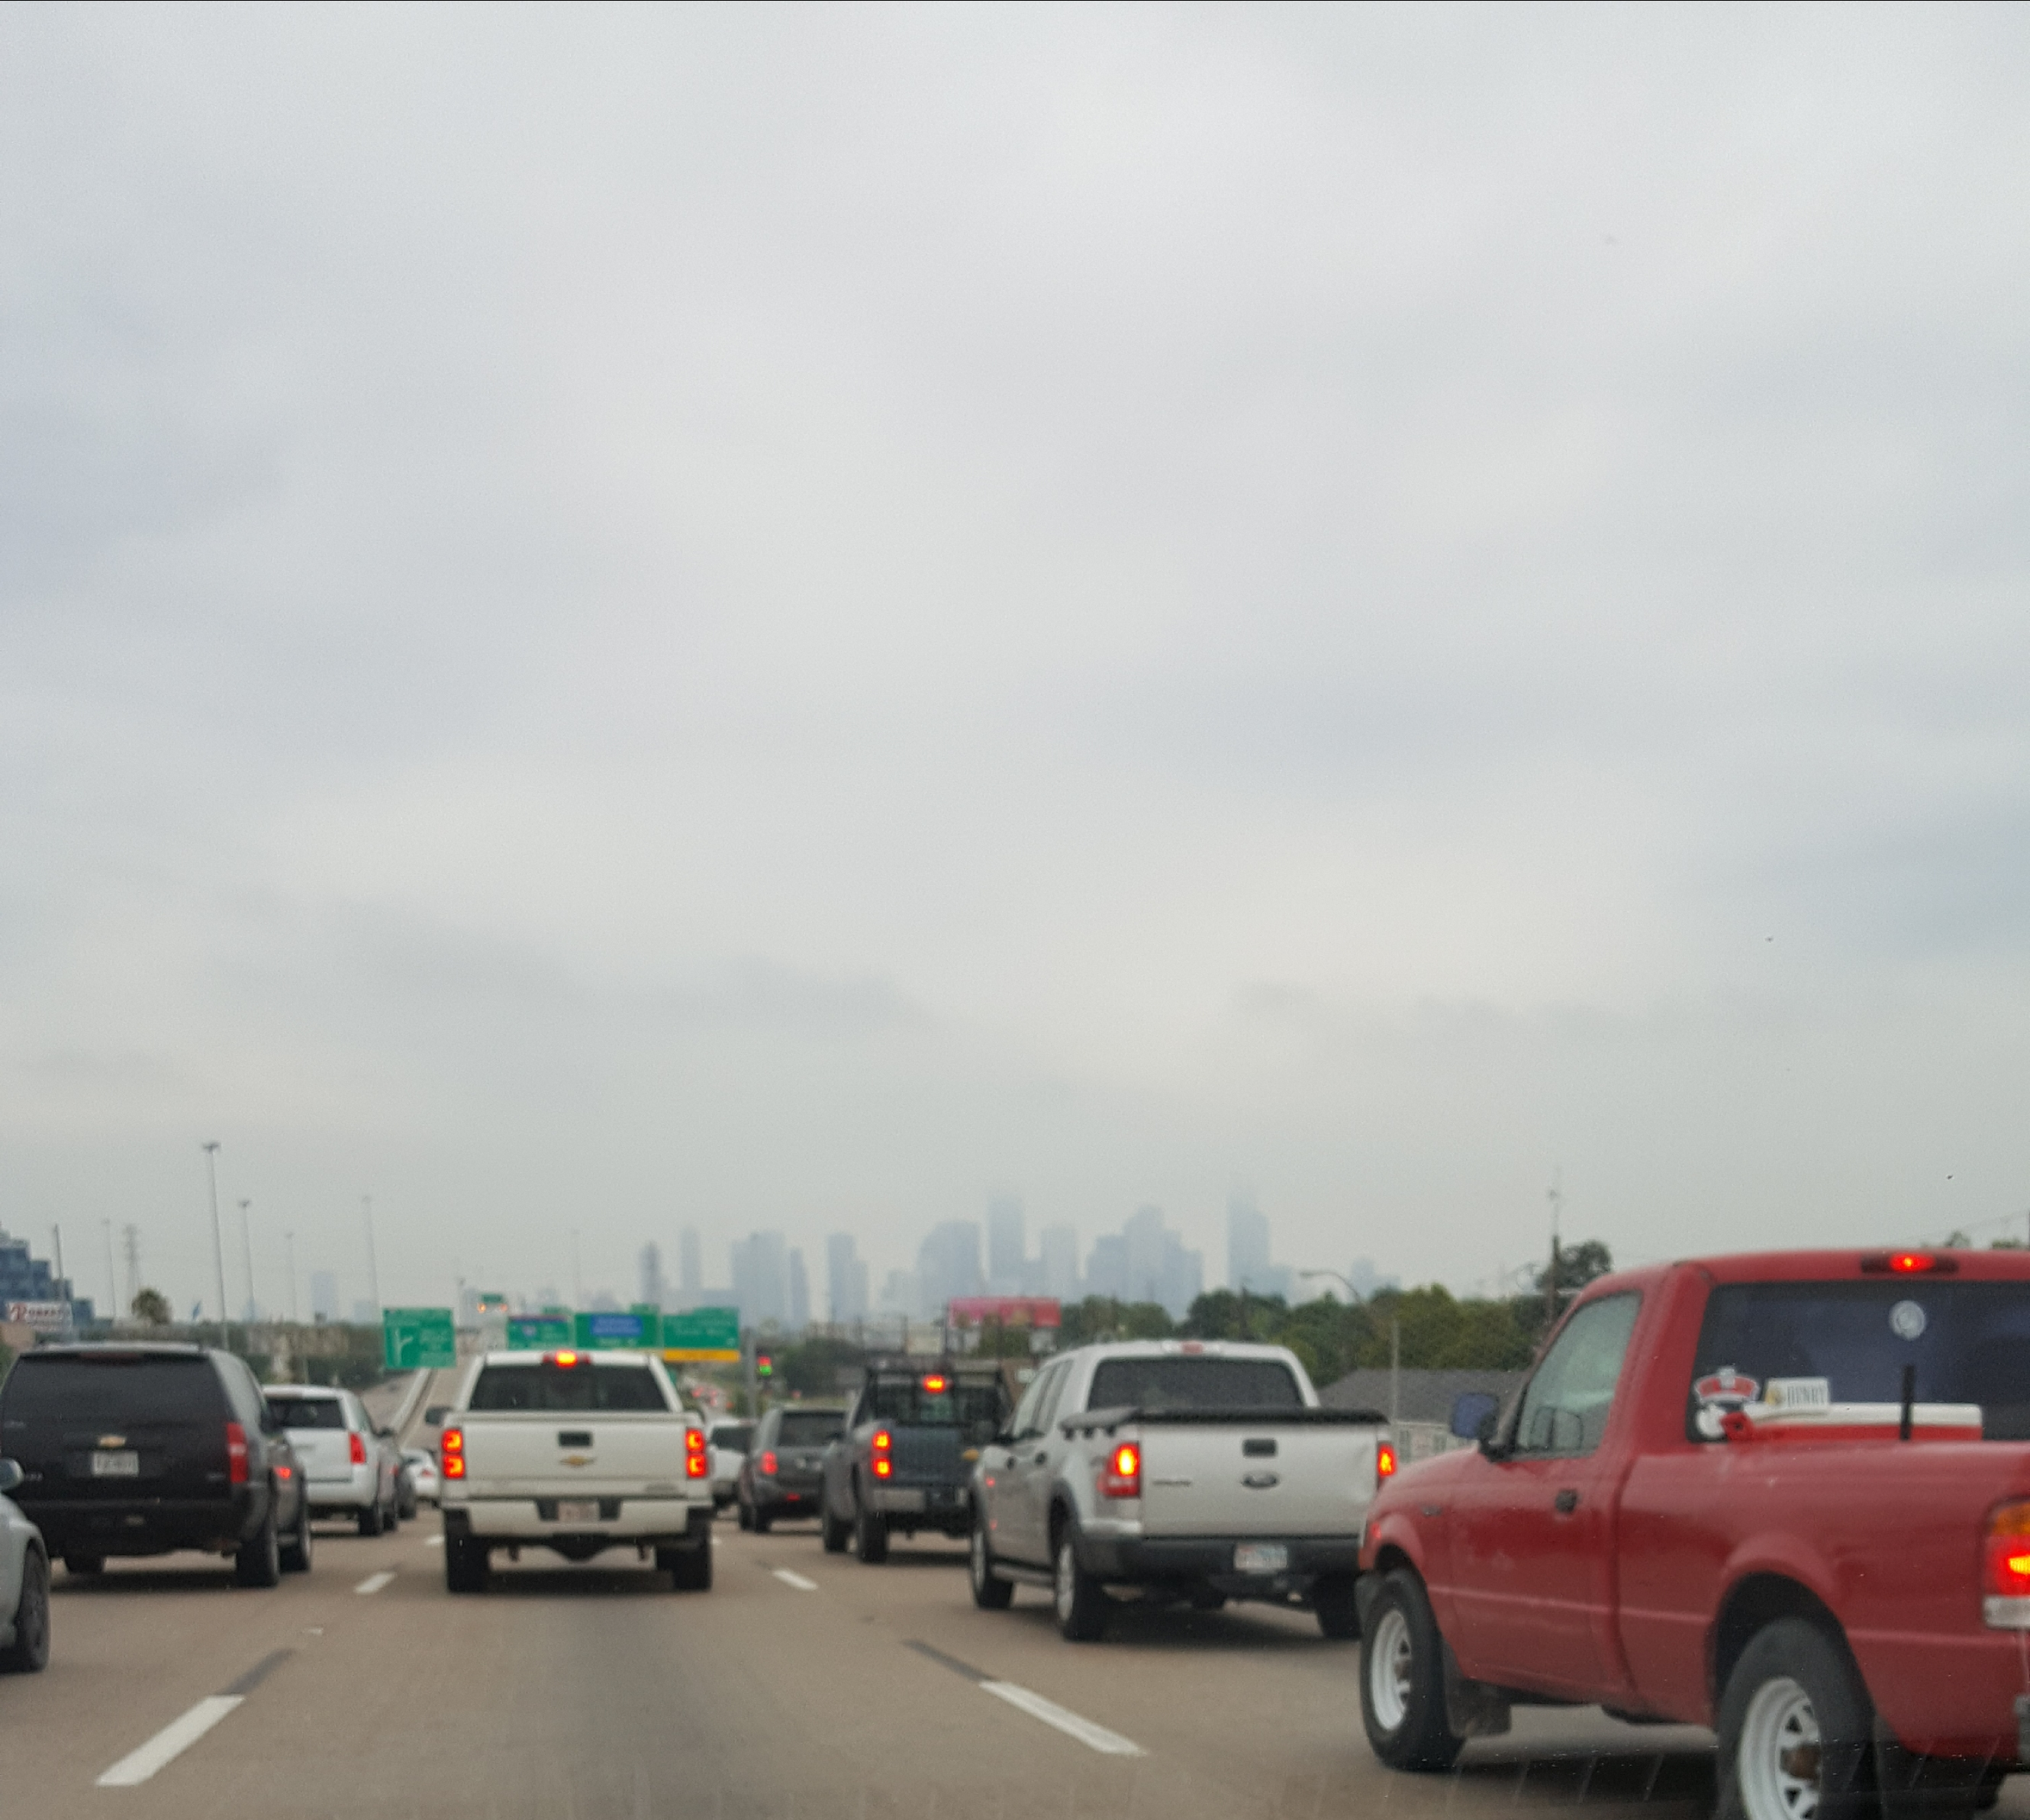 The hazy Houston skyline this morning about 8:30 a.m. CDT. Yes, we were stopped.